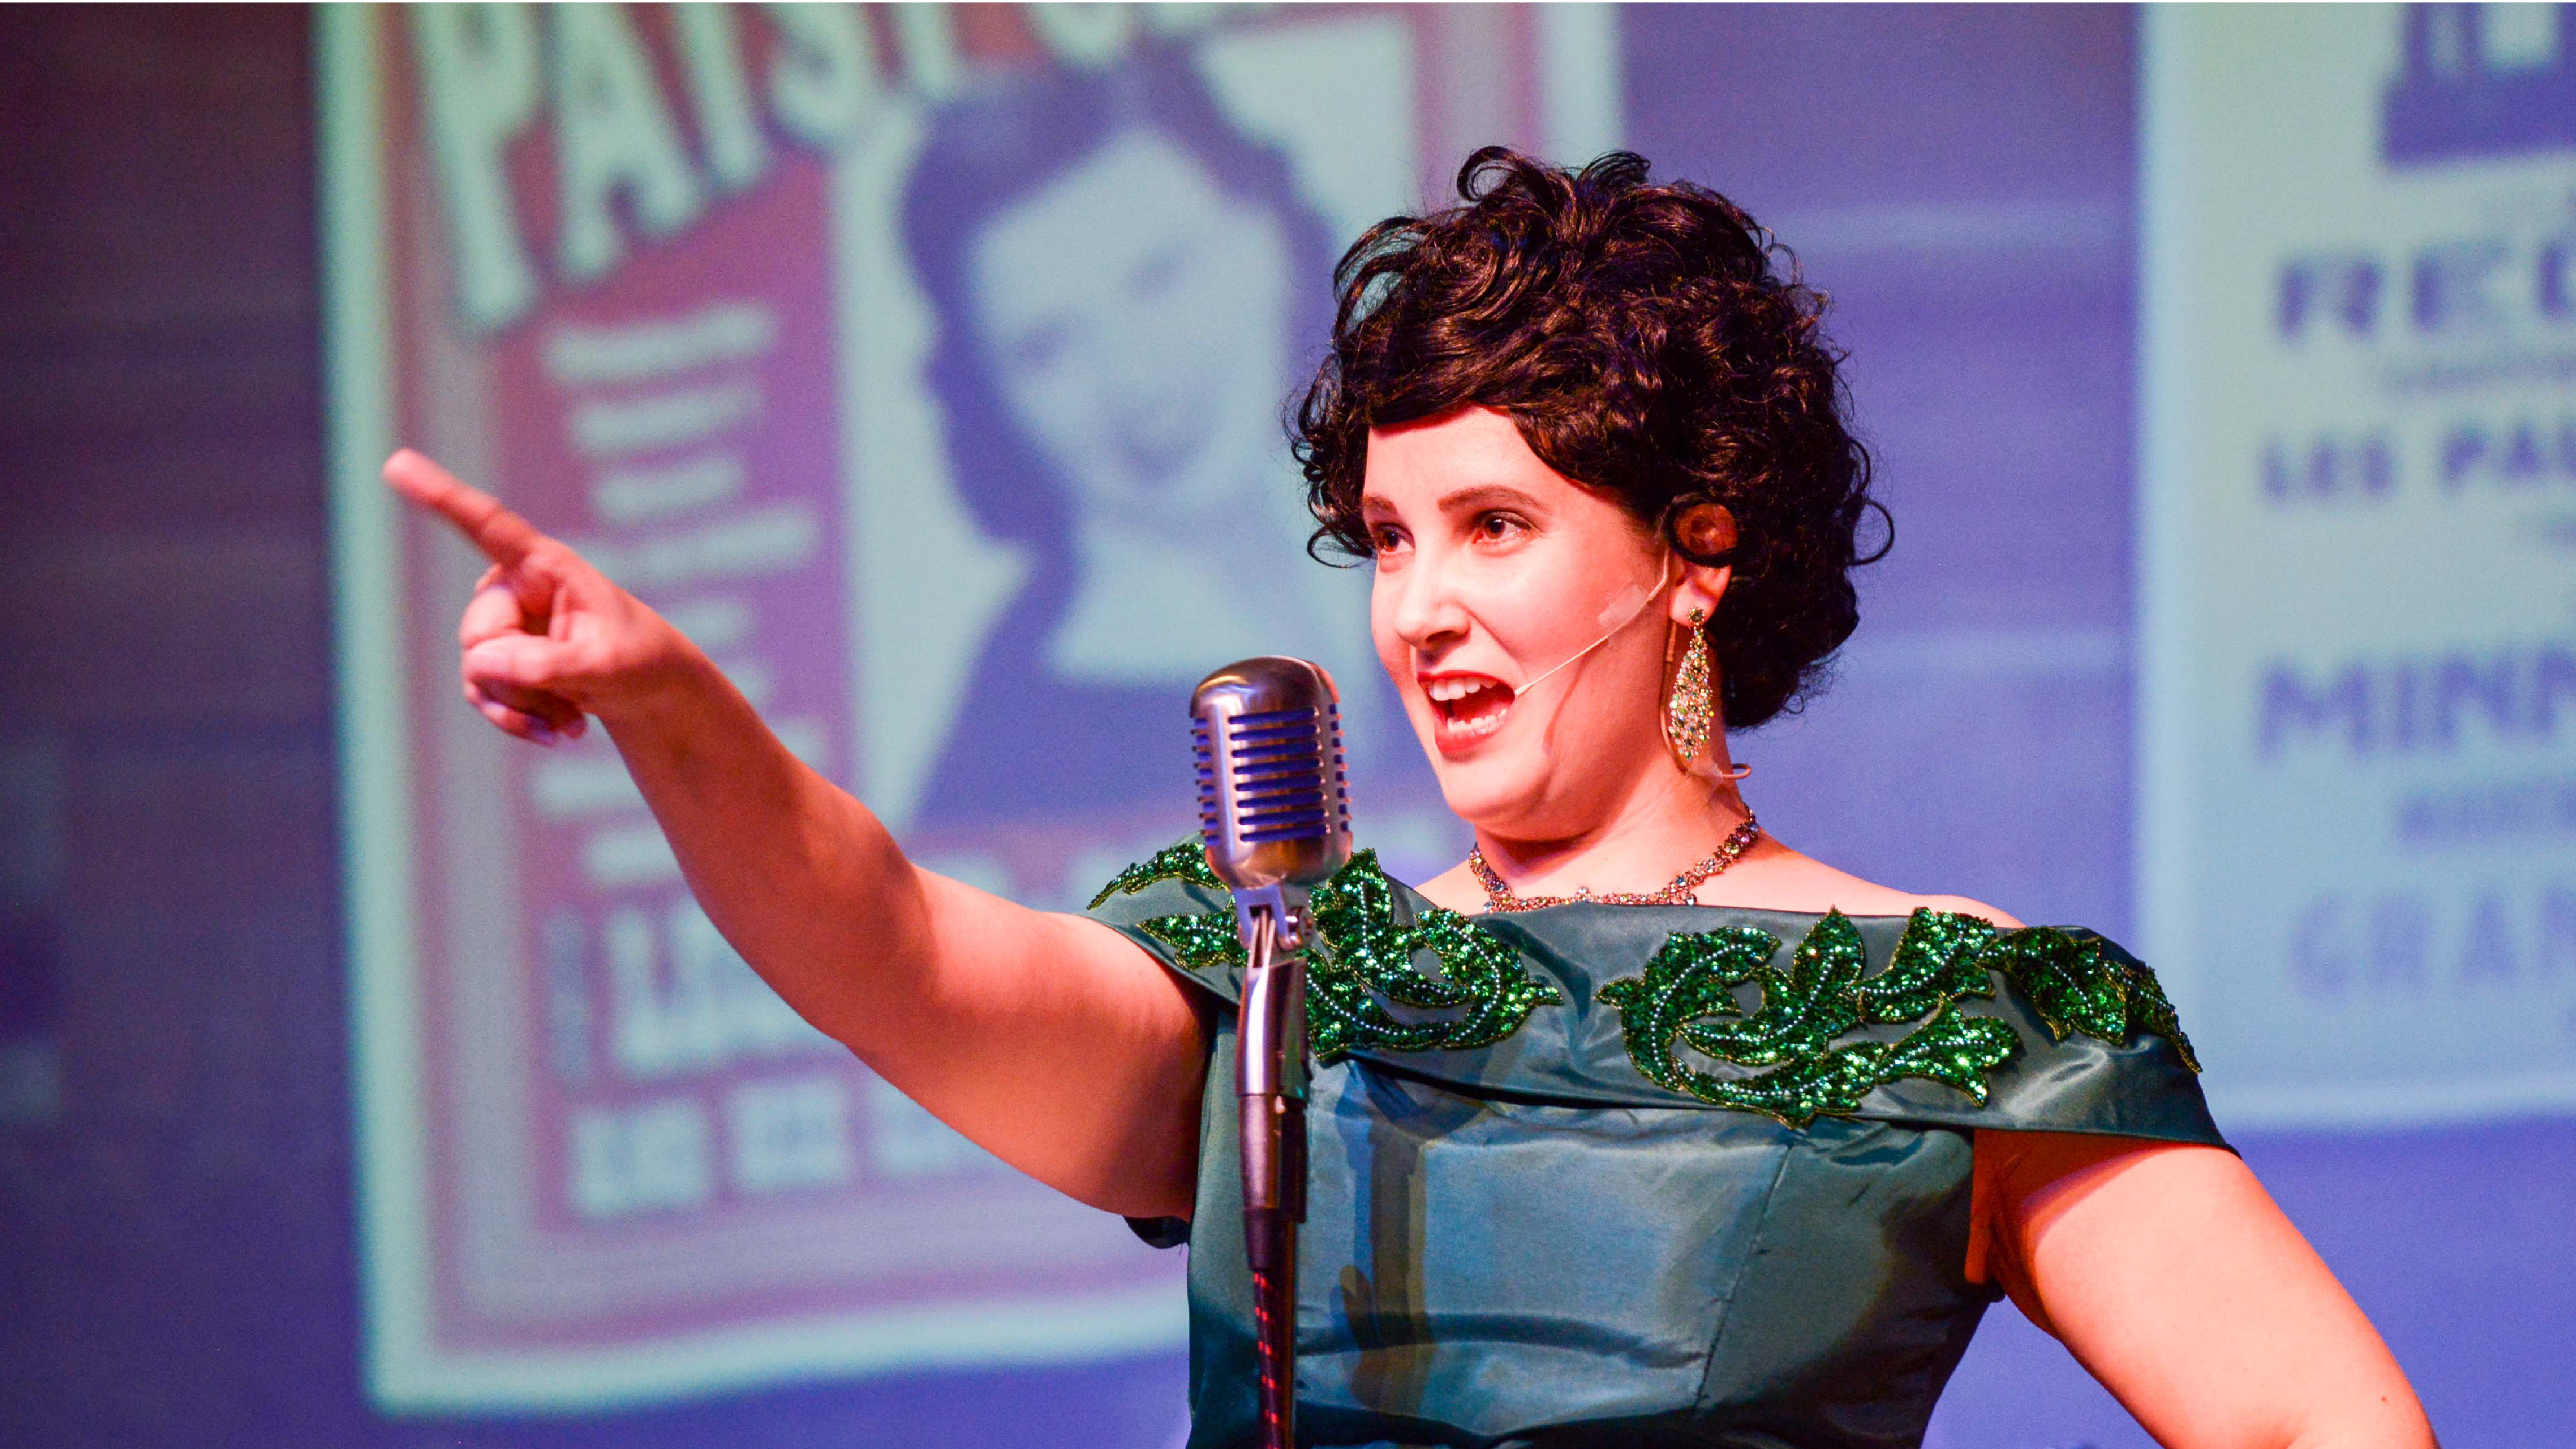 BWW Review: ALWAYS, PATSY CLINE at Georgetown Palace Theatre Leaves You Humming All The Way Home